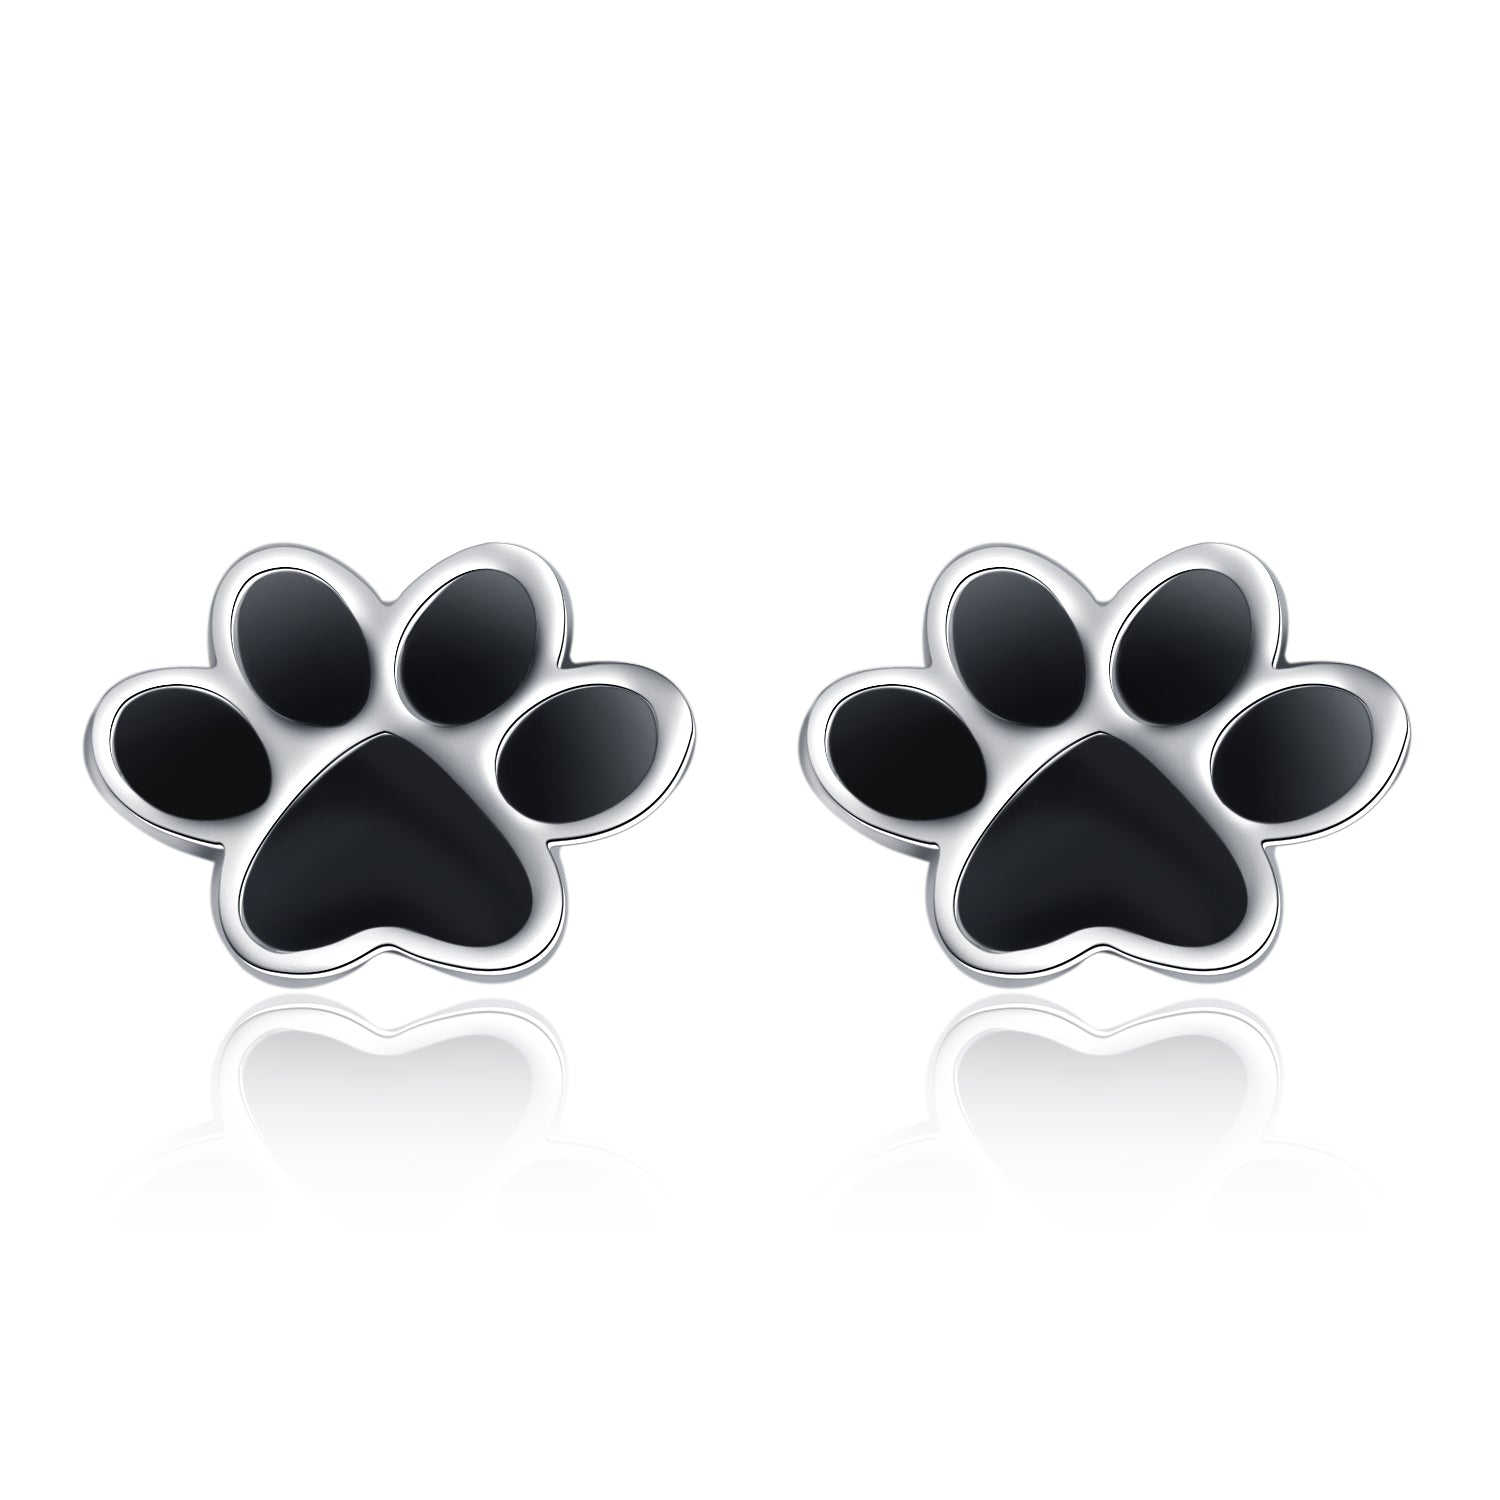 Dog Claw Earring Black Paw Silver Design Wholesale Best Quality